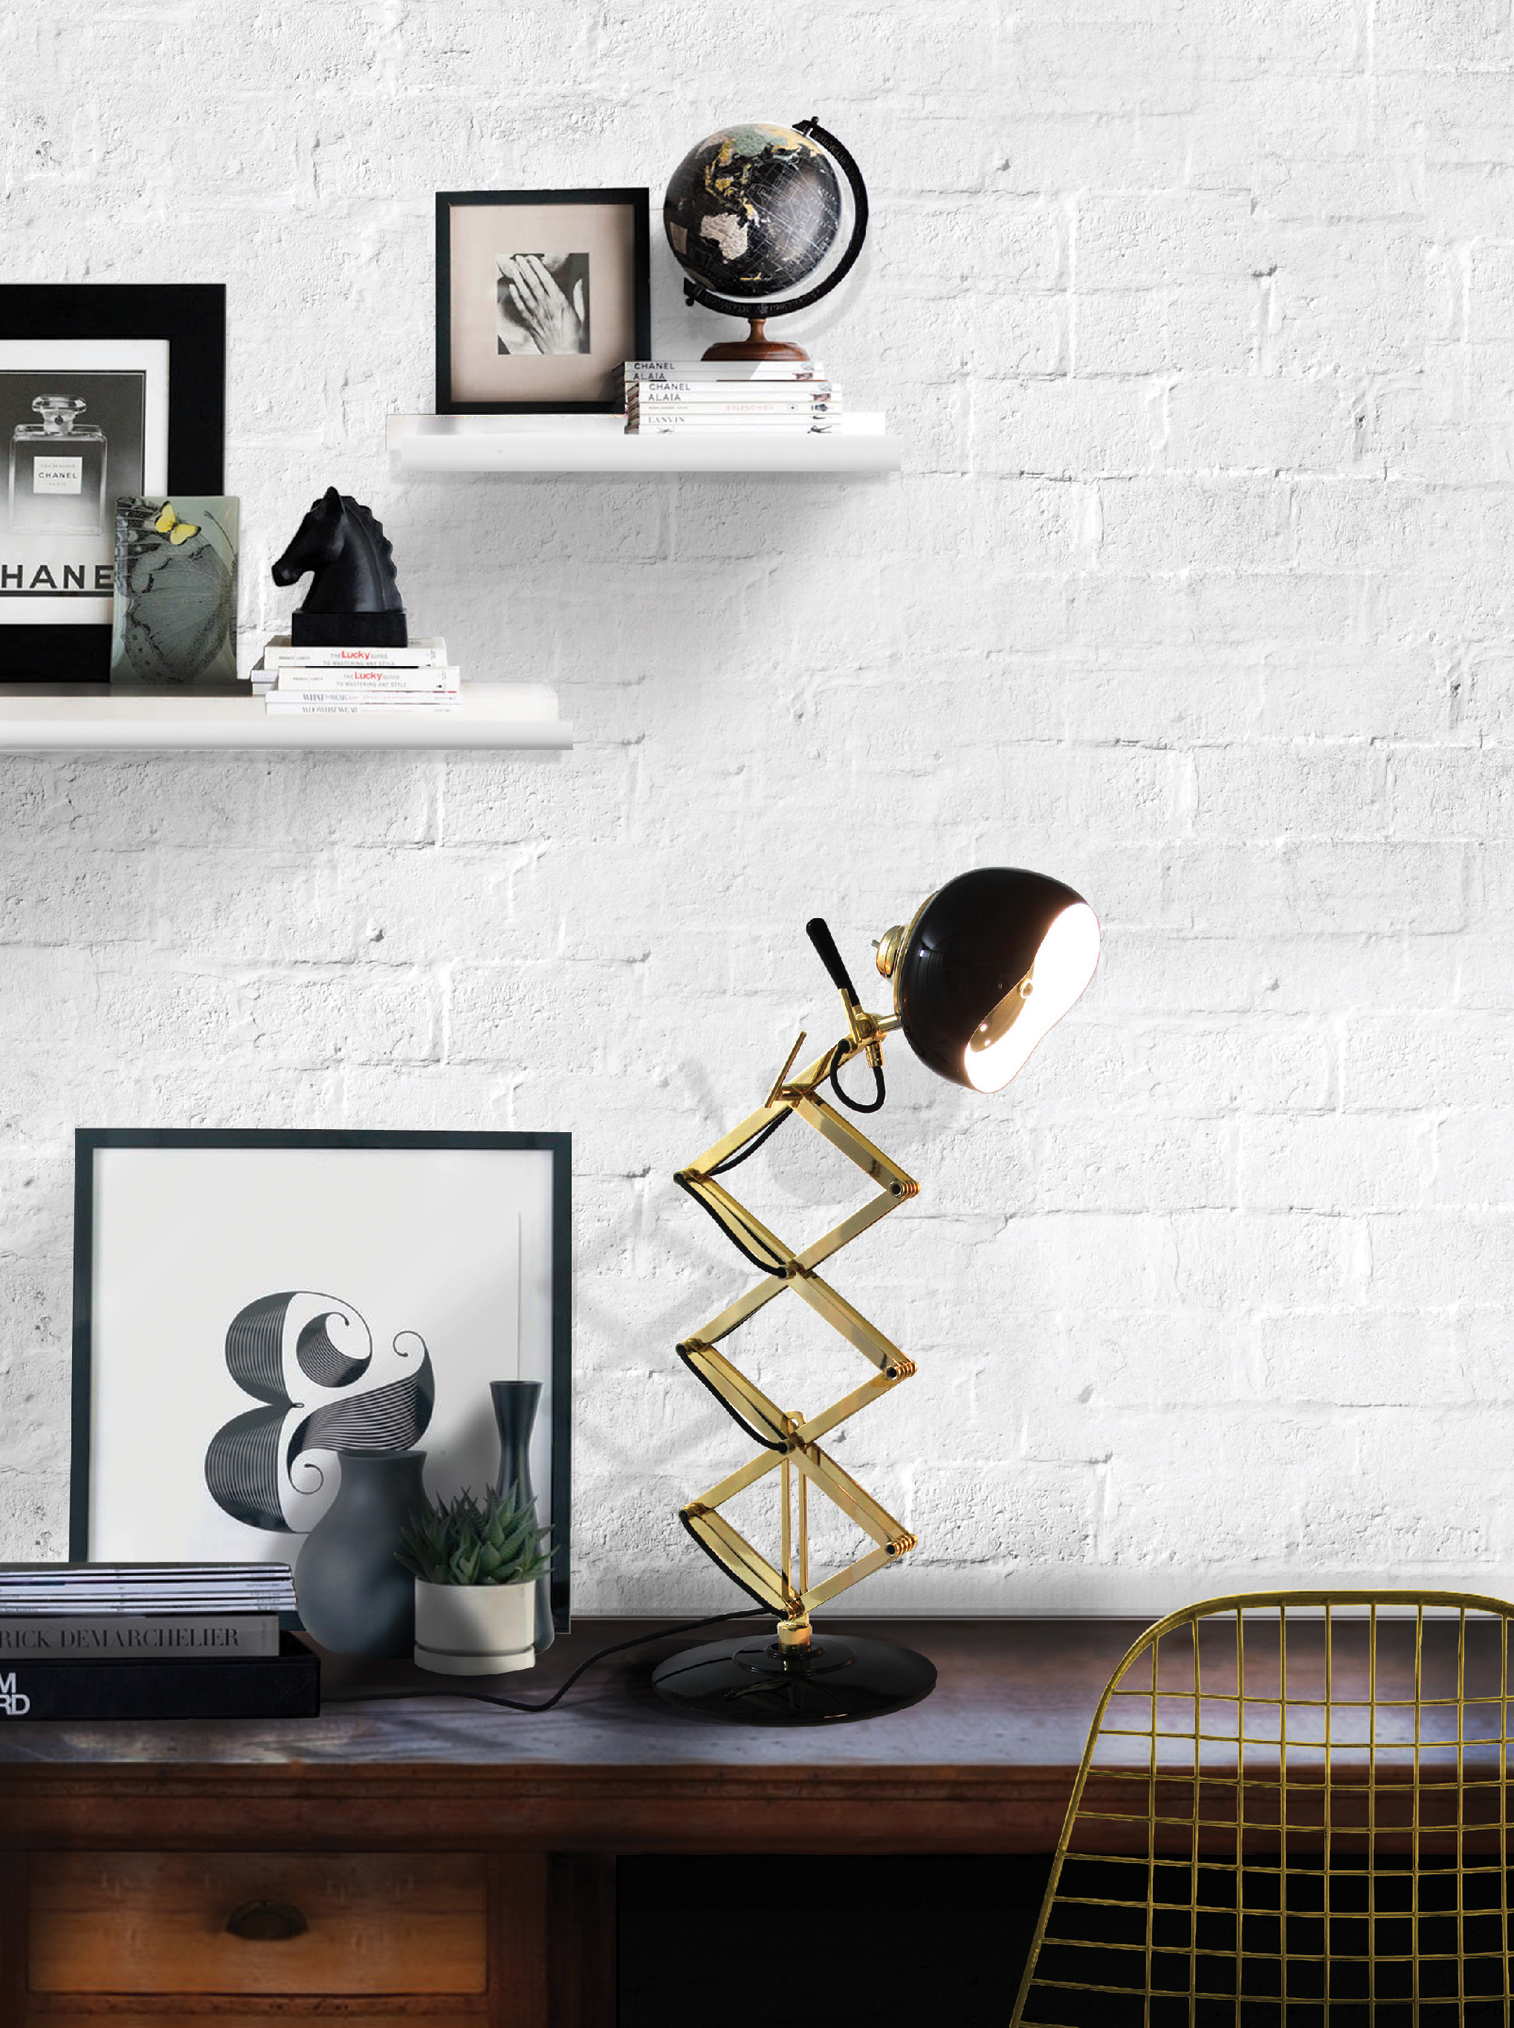 Meet The 6 Vintage Lighting Designs For Your 2018 Home Decor! 5